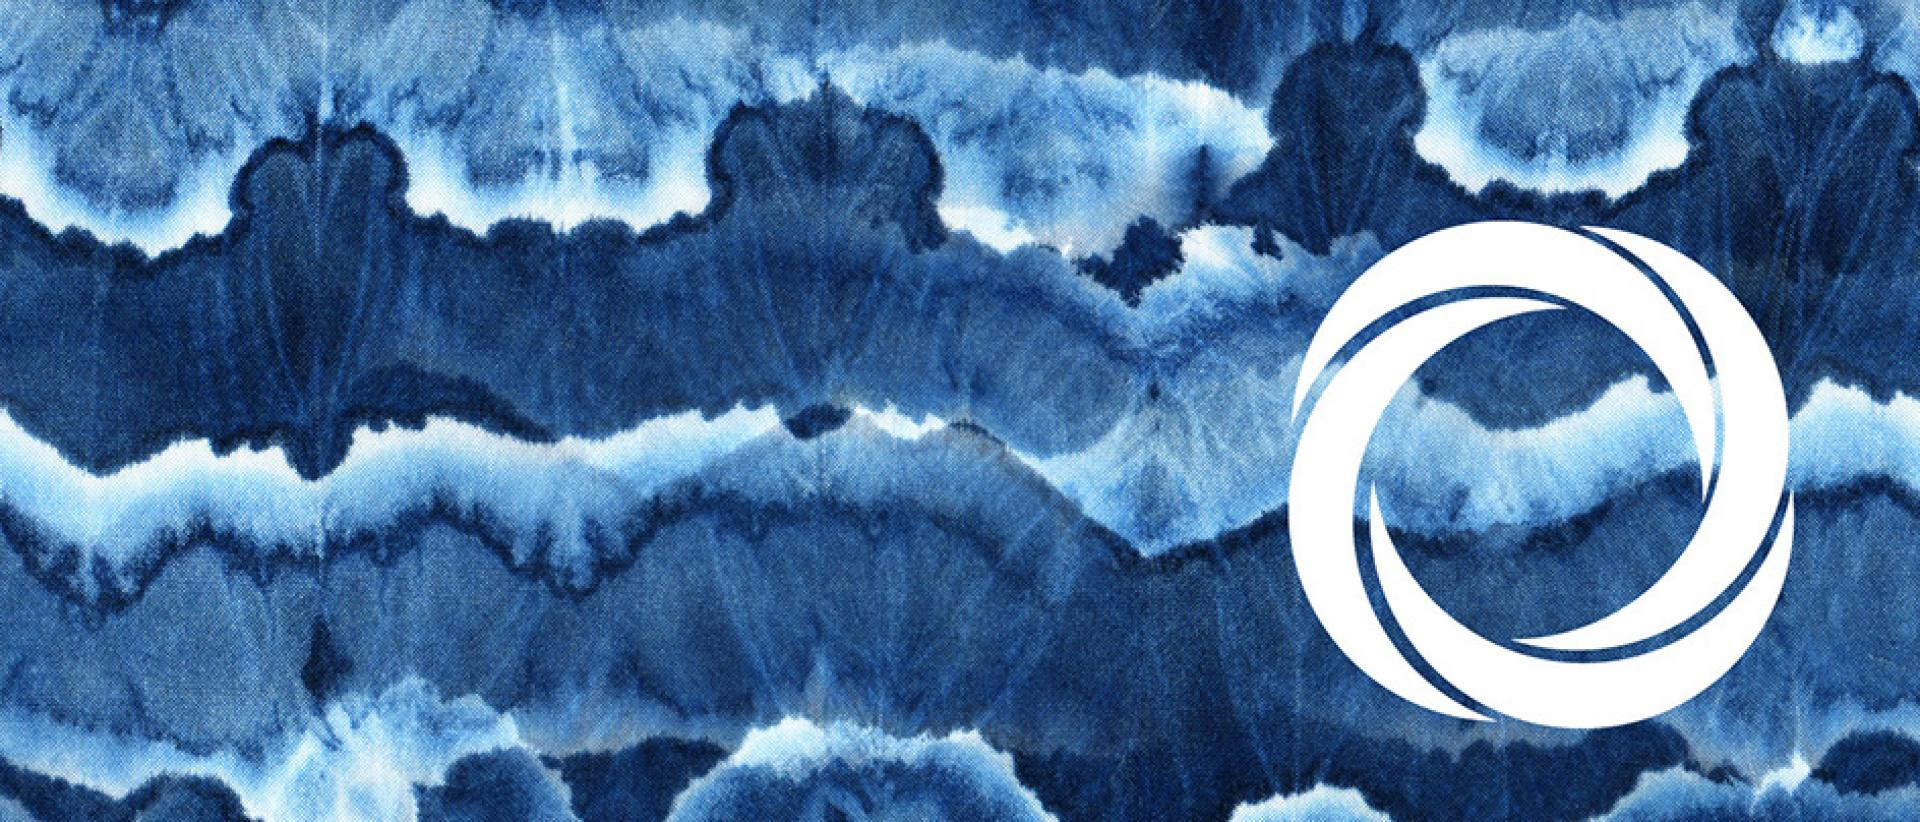 Abstract Blue Wave pattern with Arts Council of Wales logo